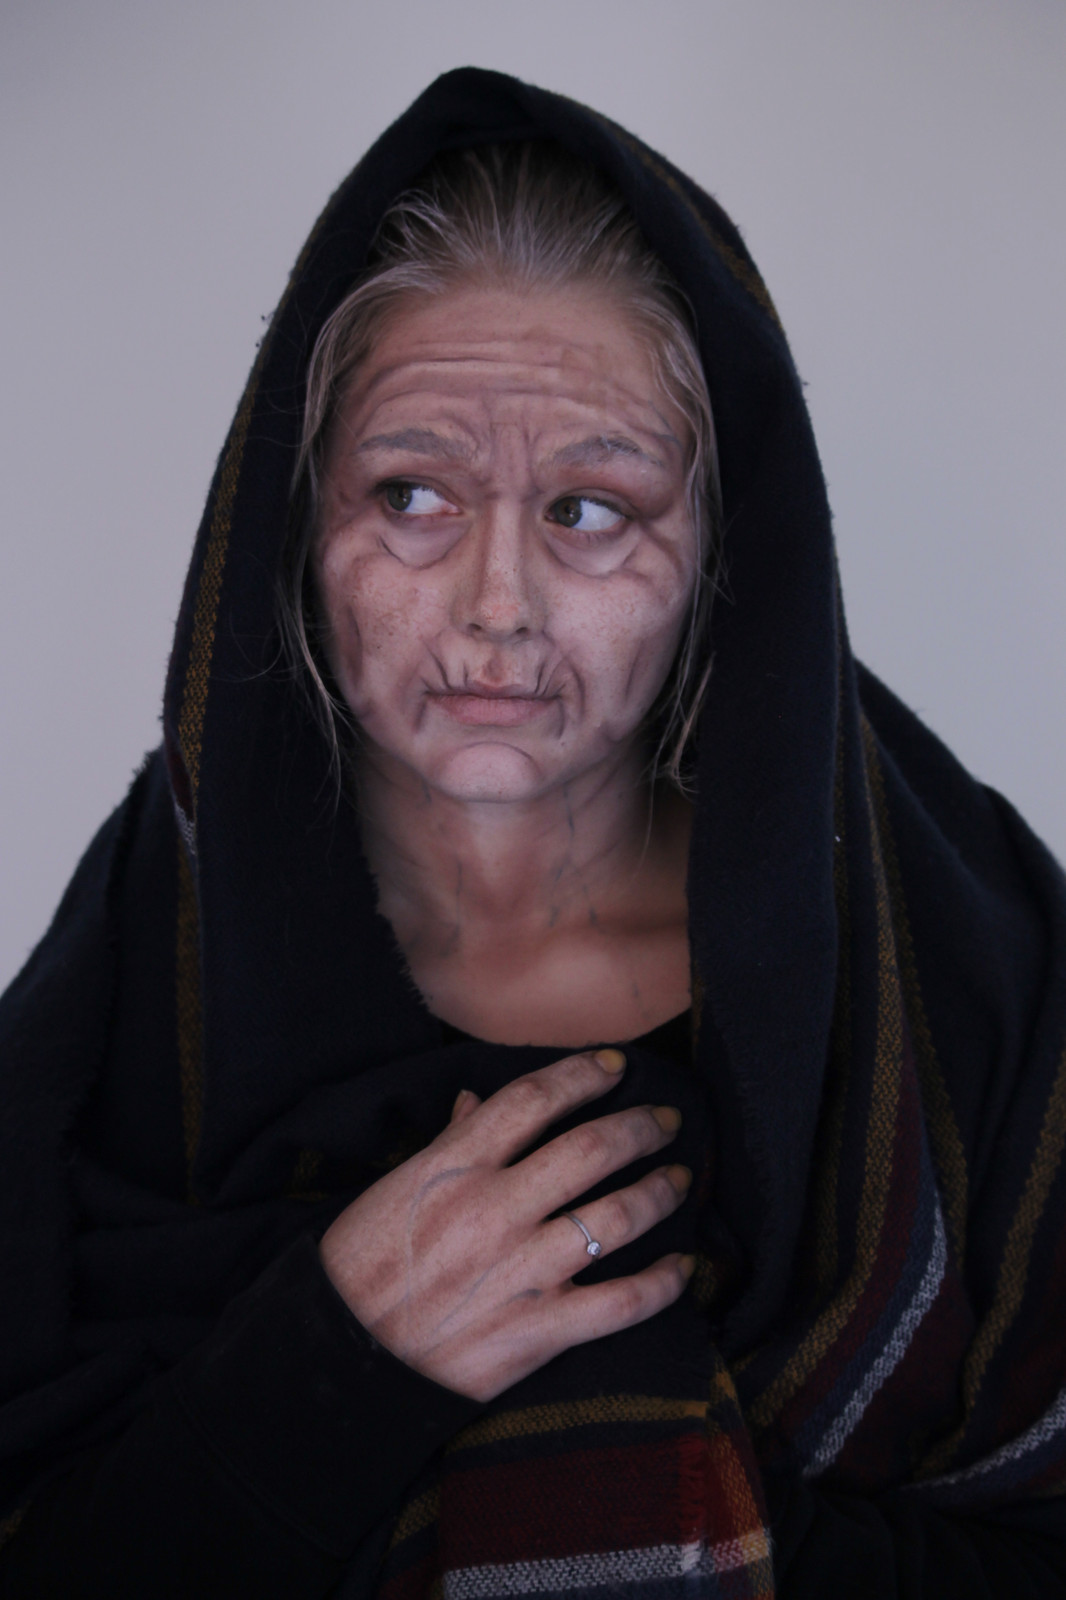 Old Age Makeup (Theatrical)